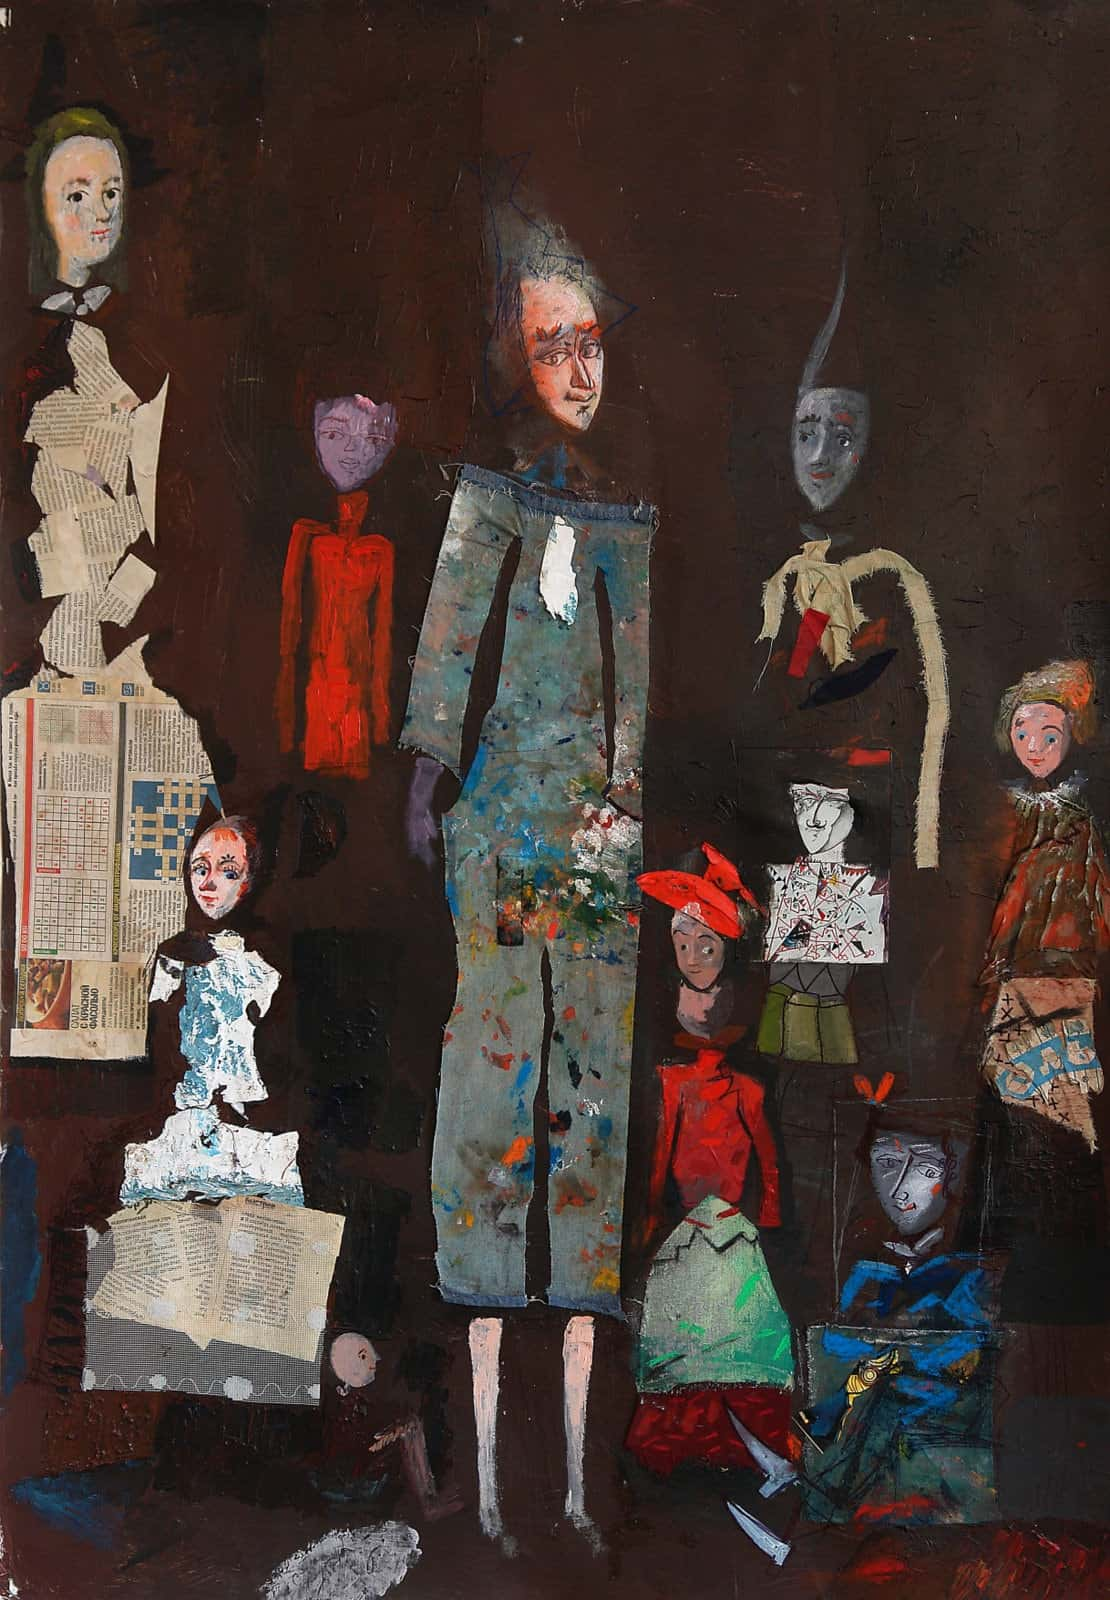 Tha Actors. Temo Svirely, georgian-ukrainian artist (born 1965 in Georgia - died 2014 in Ukraine), textile, acryl, pastel on paper (collage), 100×70 cm, 2007